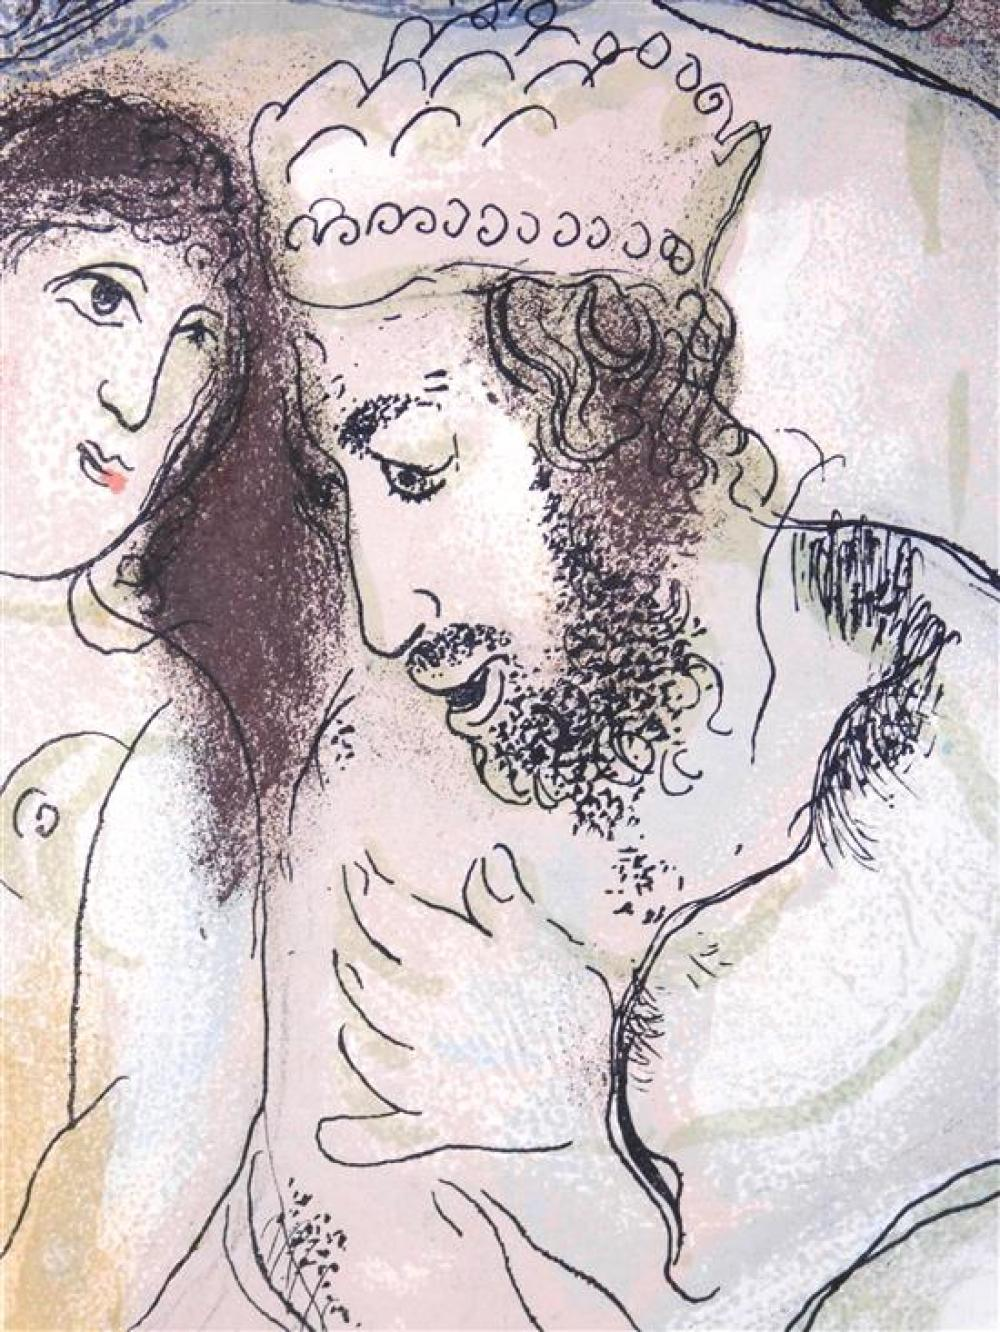 """Marc Chagall (Russia/ France, 1887 - 1985), """"Sarah and Abimelech"""", 1960, color lithograph, Mourlot 239, Ref: Andres Suret, """"Arc Chag..."""